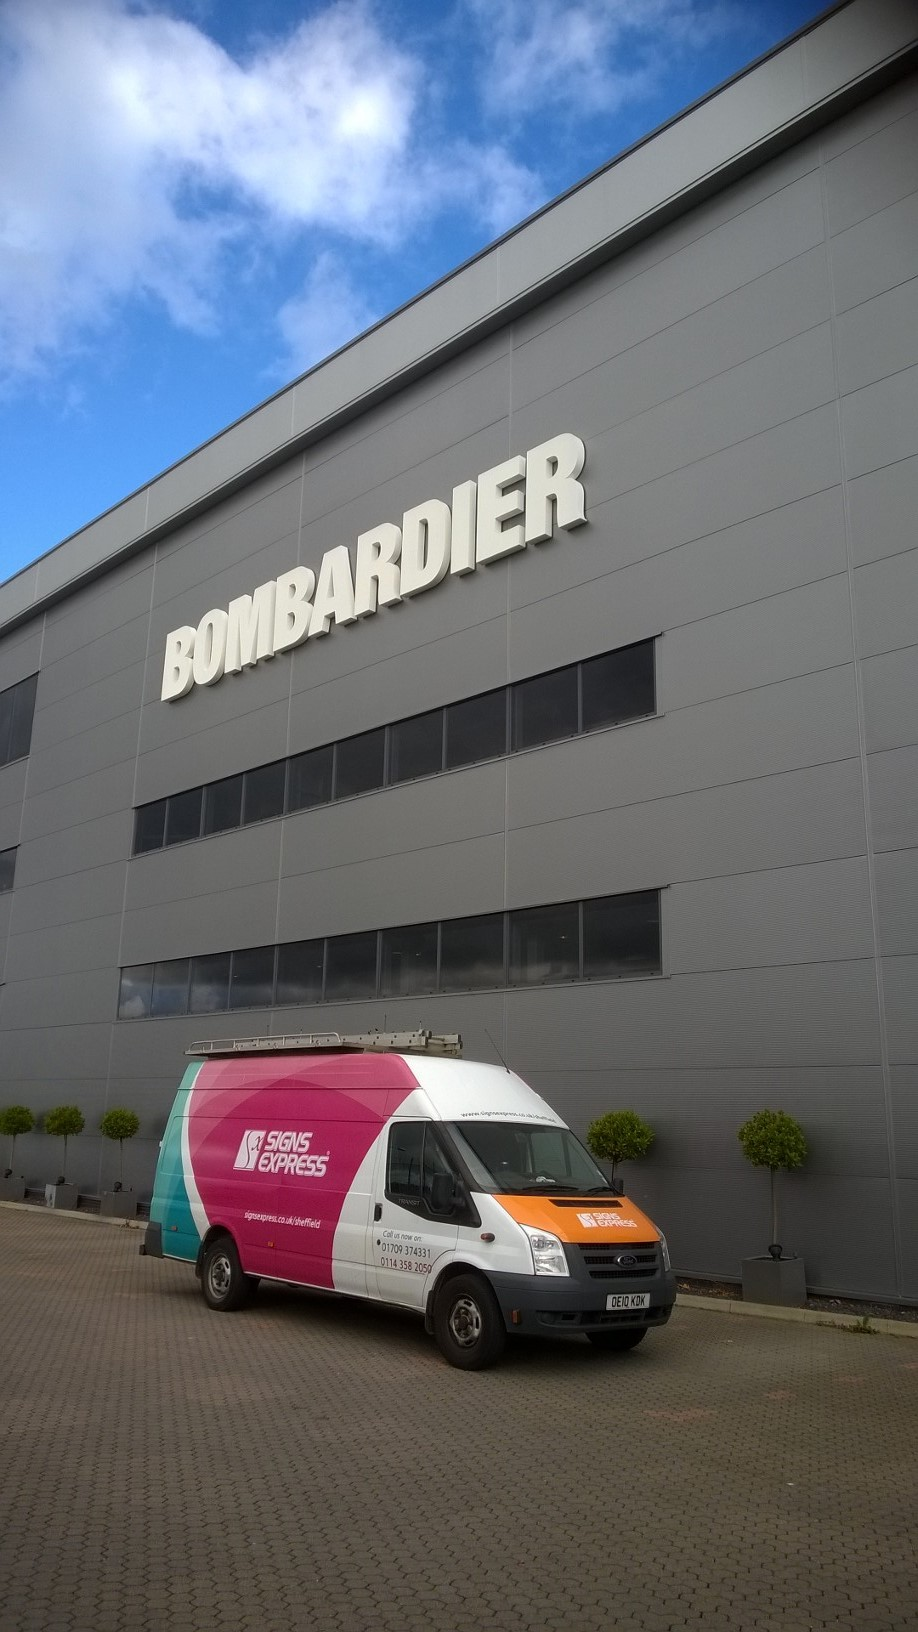 Bombardier (Biggin Hill airport) LED's built up powder 3metre coated letters